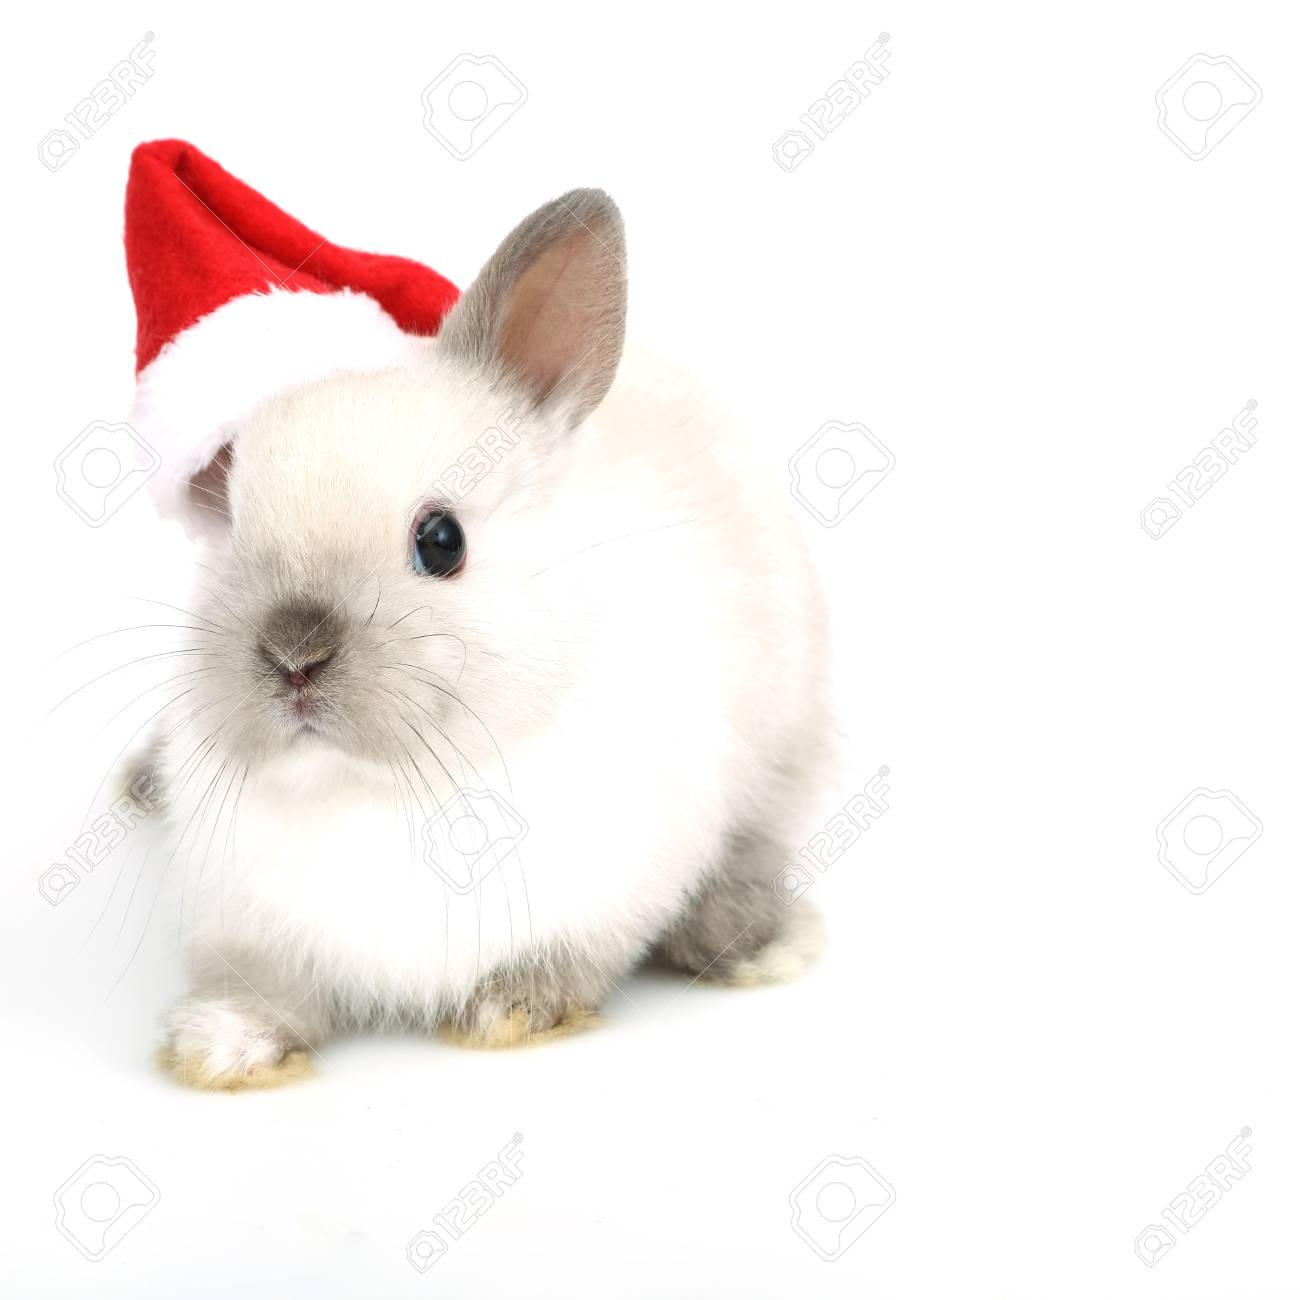 Cute White Baby Bunny Rabbit On The White Background Stock Photo Picture And Royalty Free Image Image 91262870